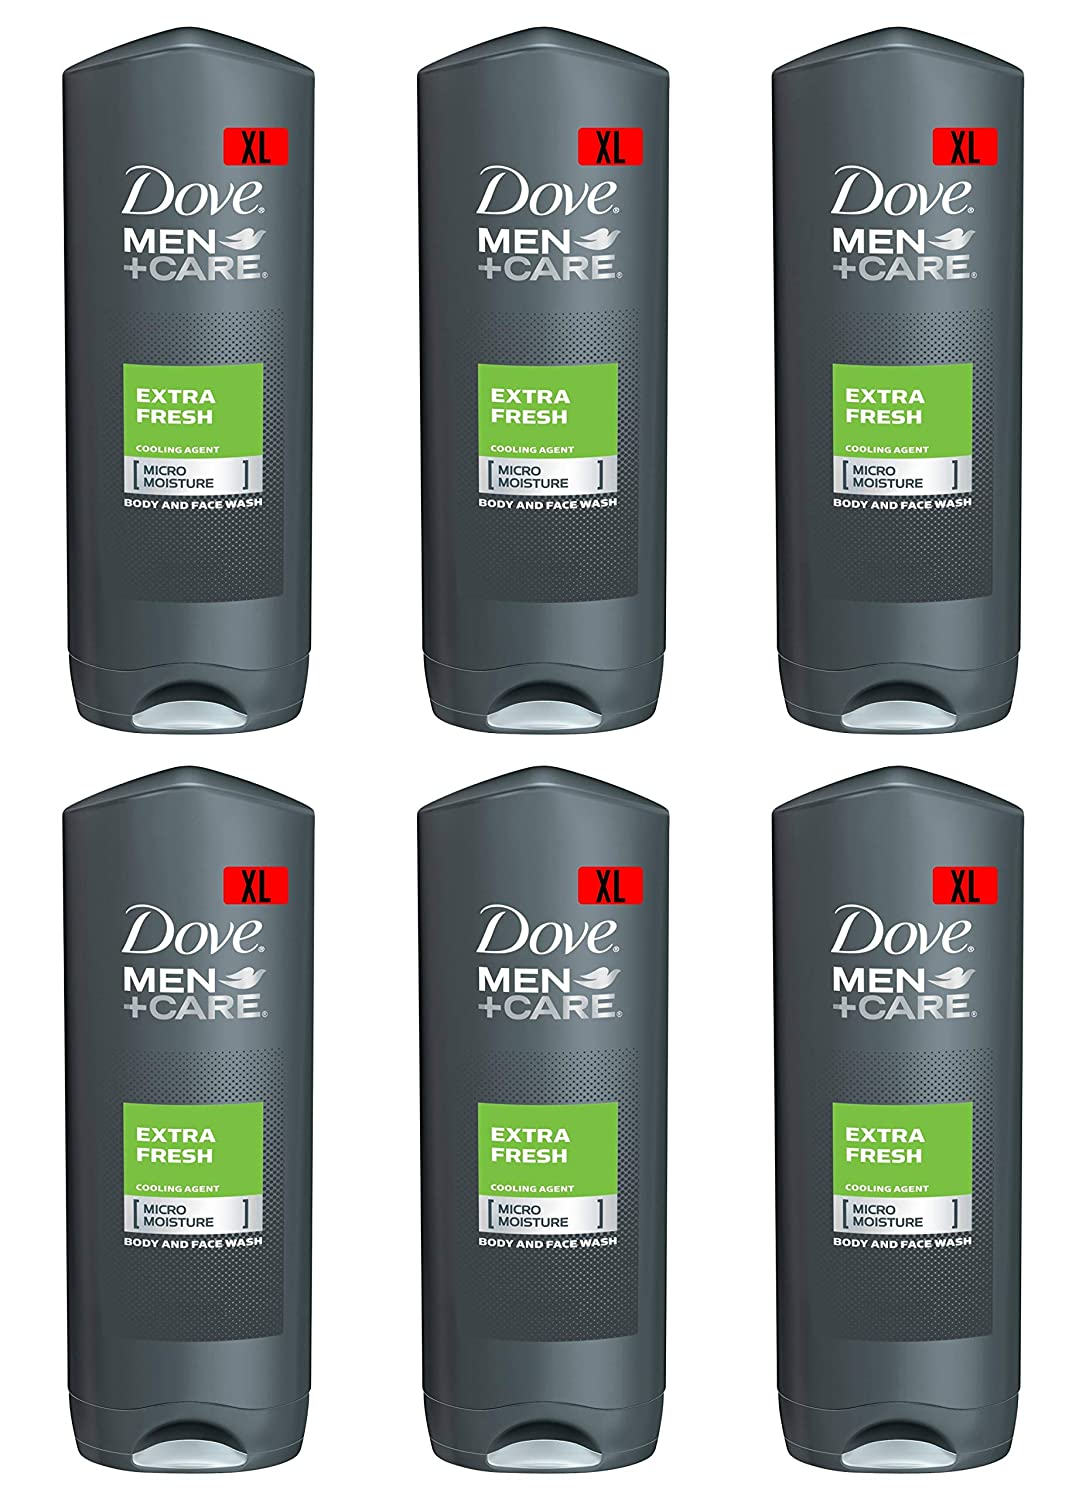 Dove Men Care Body & Face Wash, Extra Fresh - 13.5 Fl Oz / 400 mL X 6 Pack Case, Made in Germany